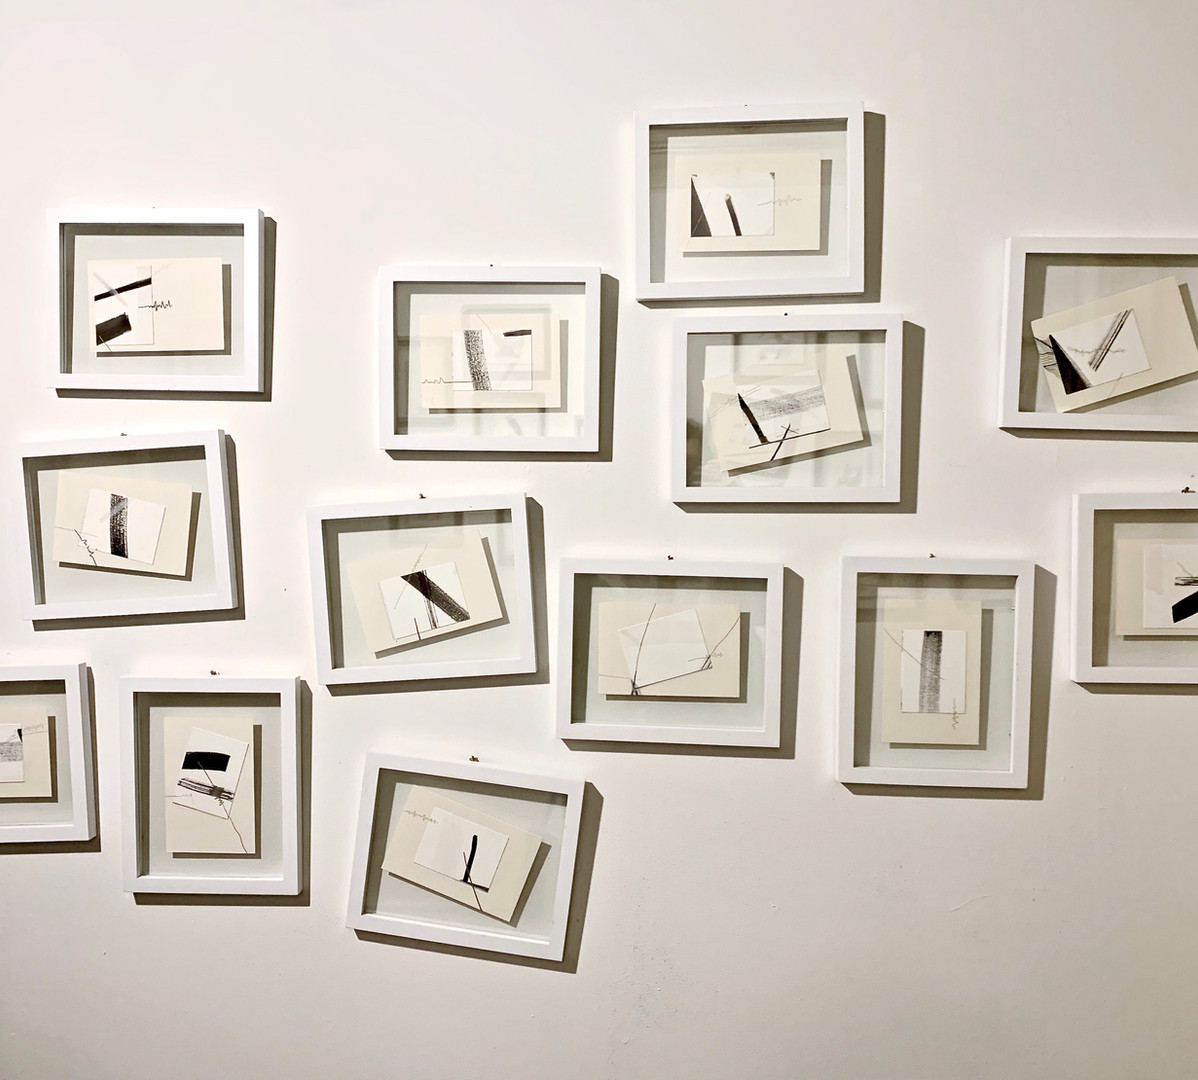 Installation View: Artwork Series No. 3